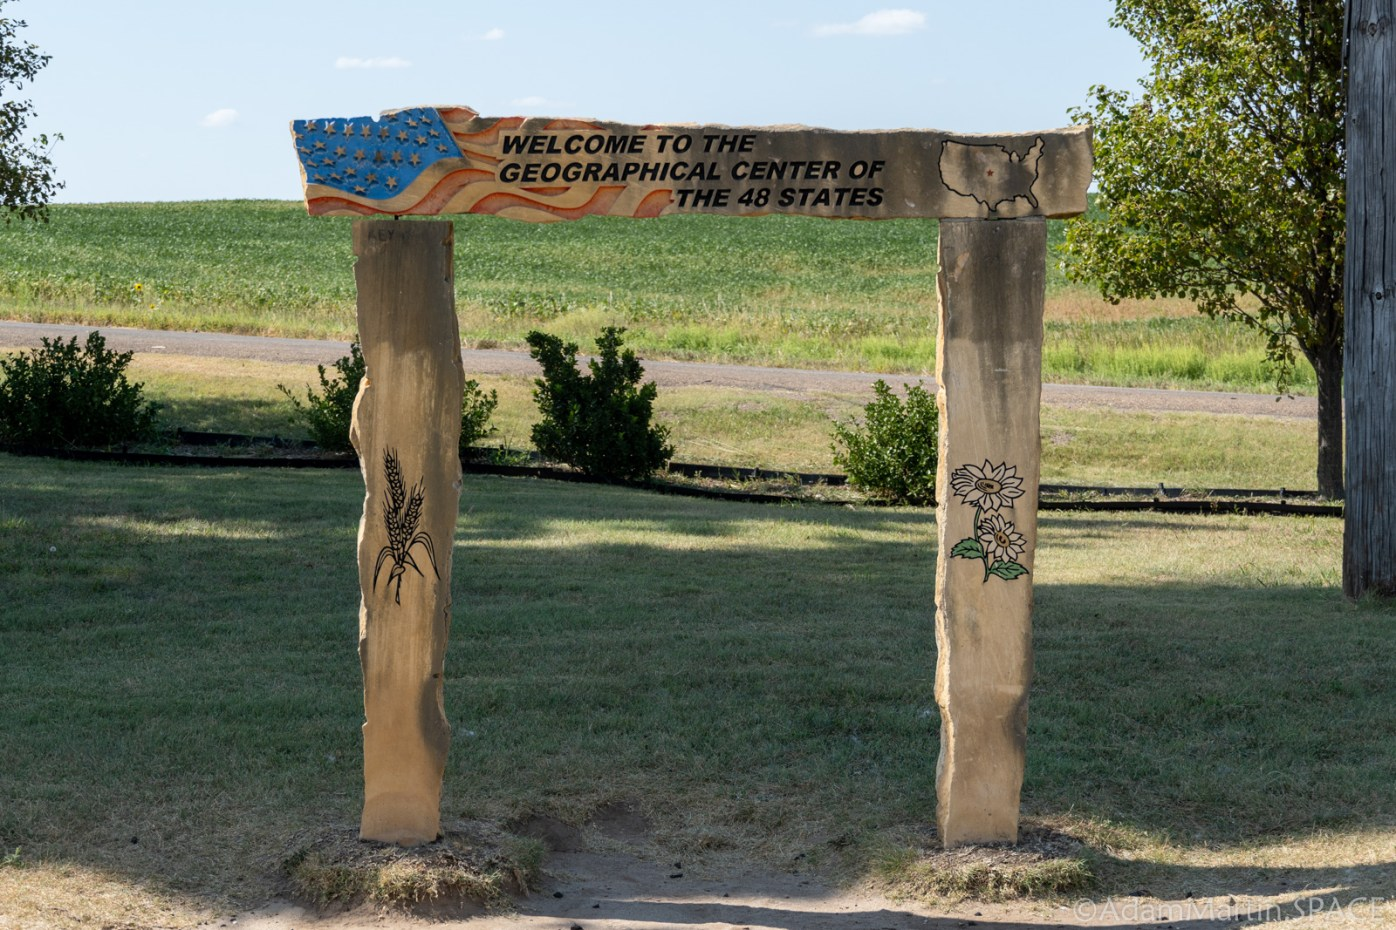 Geographic Center of the Contiguous United States - Small welcome sign